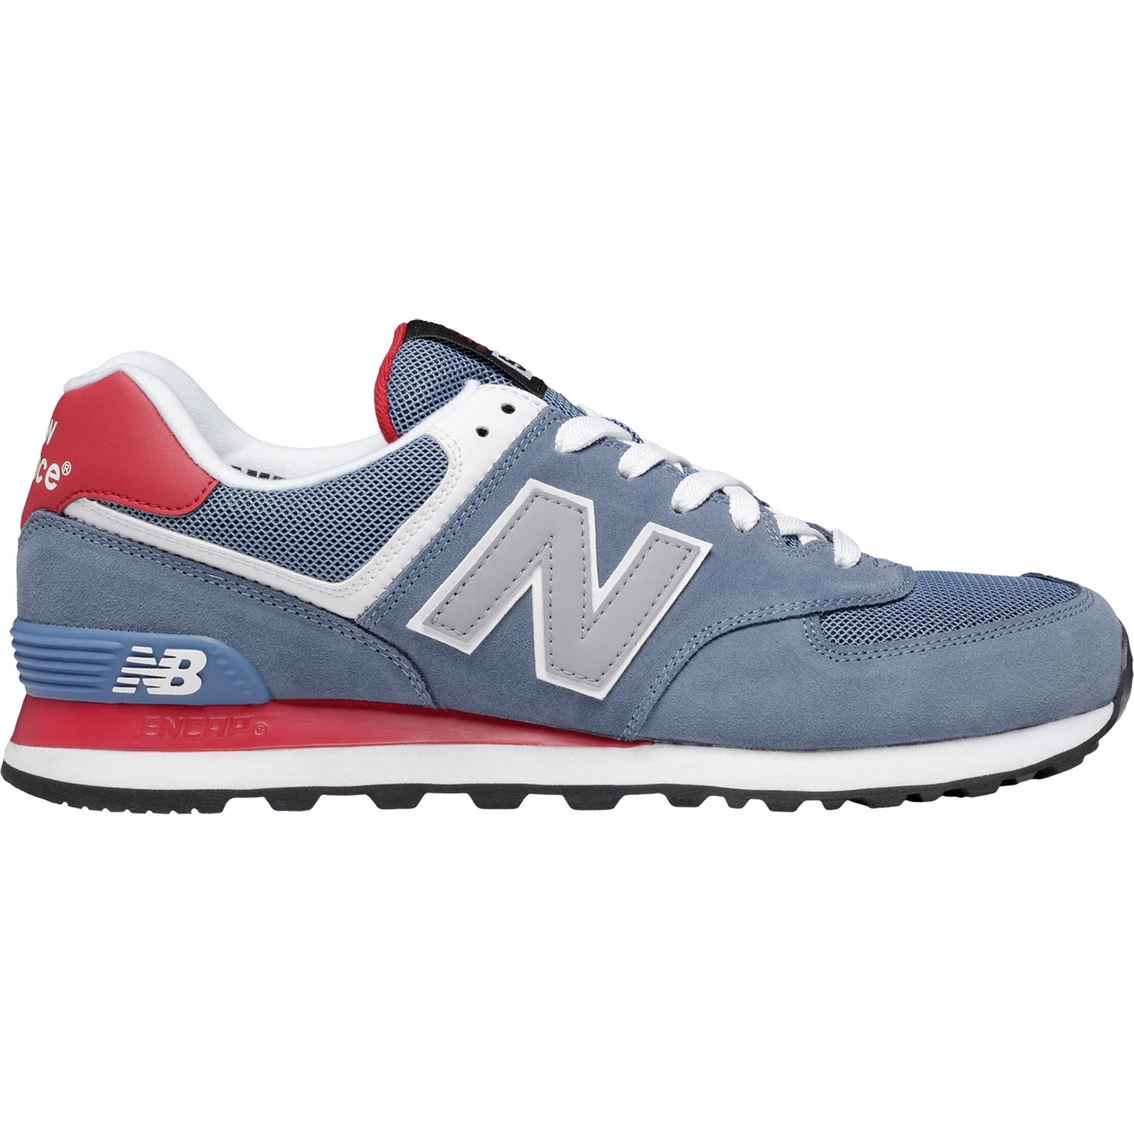 0c0c2adf08264 New Balance Men's Ml574cpj Athleisure Shoes | Casuals | Back To ...